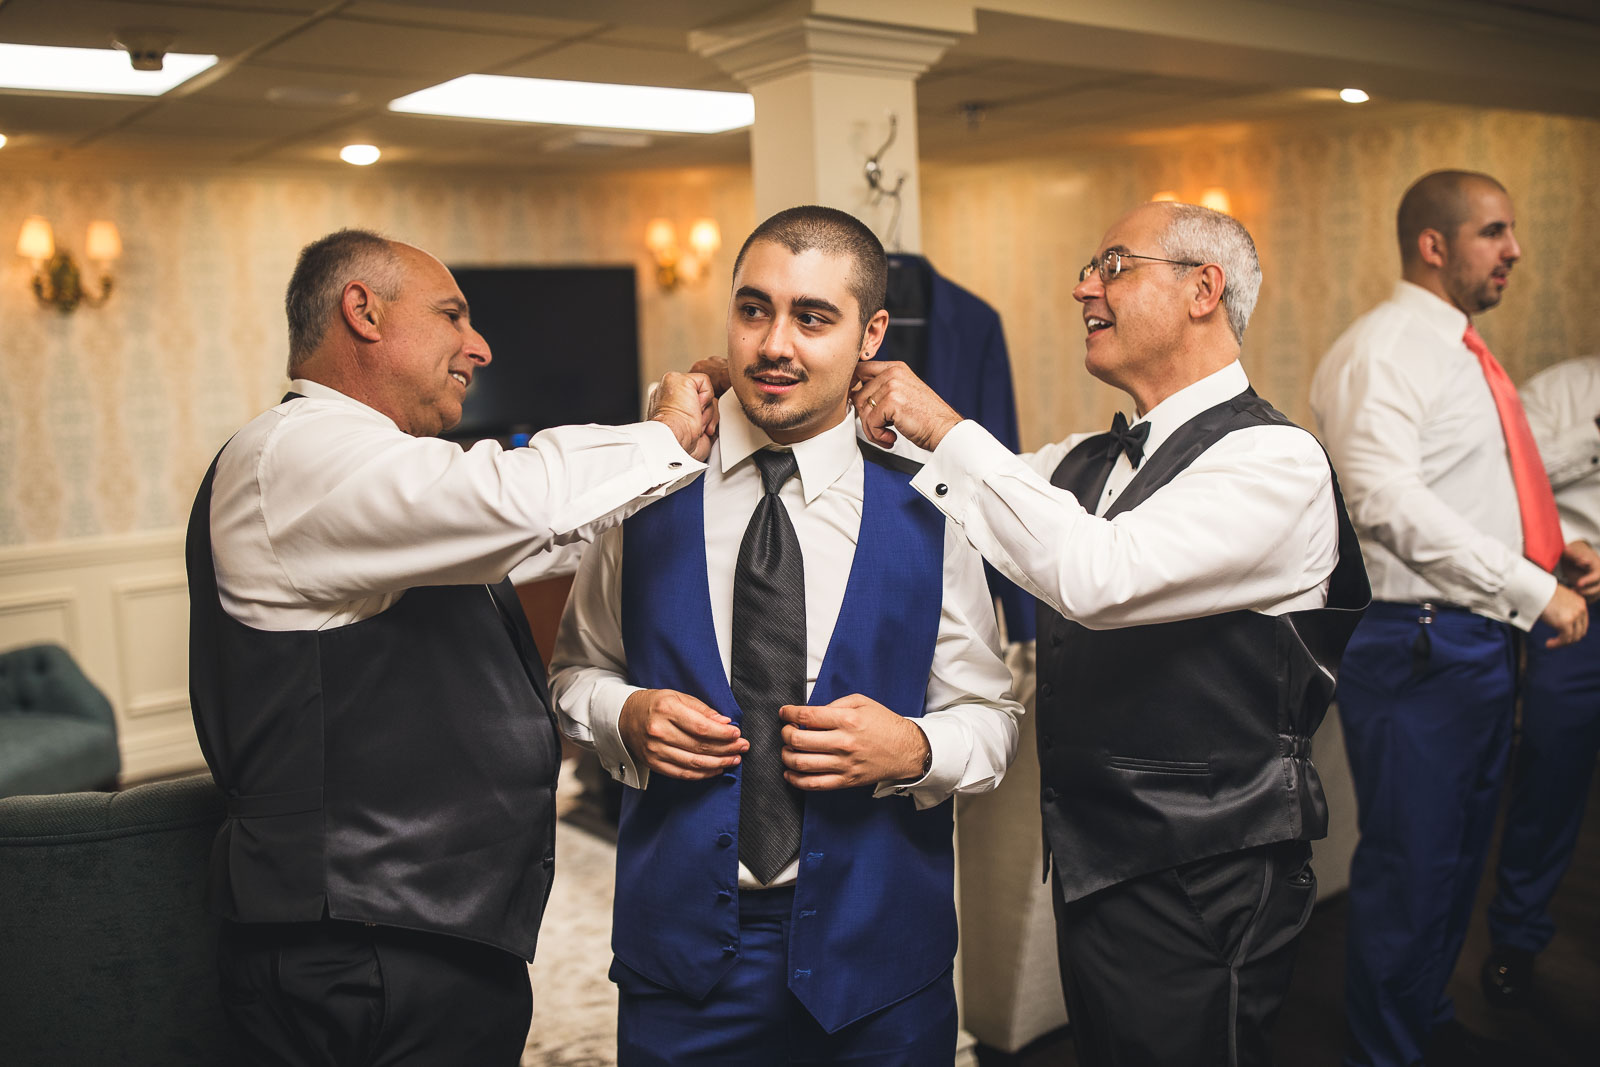 Fathers help Groom with Suit